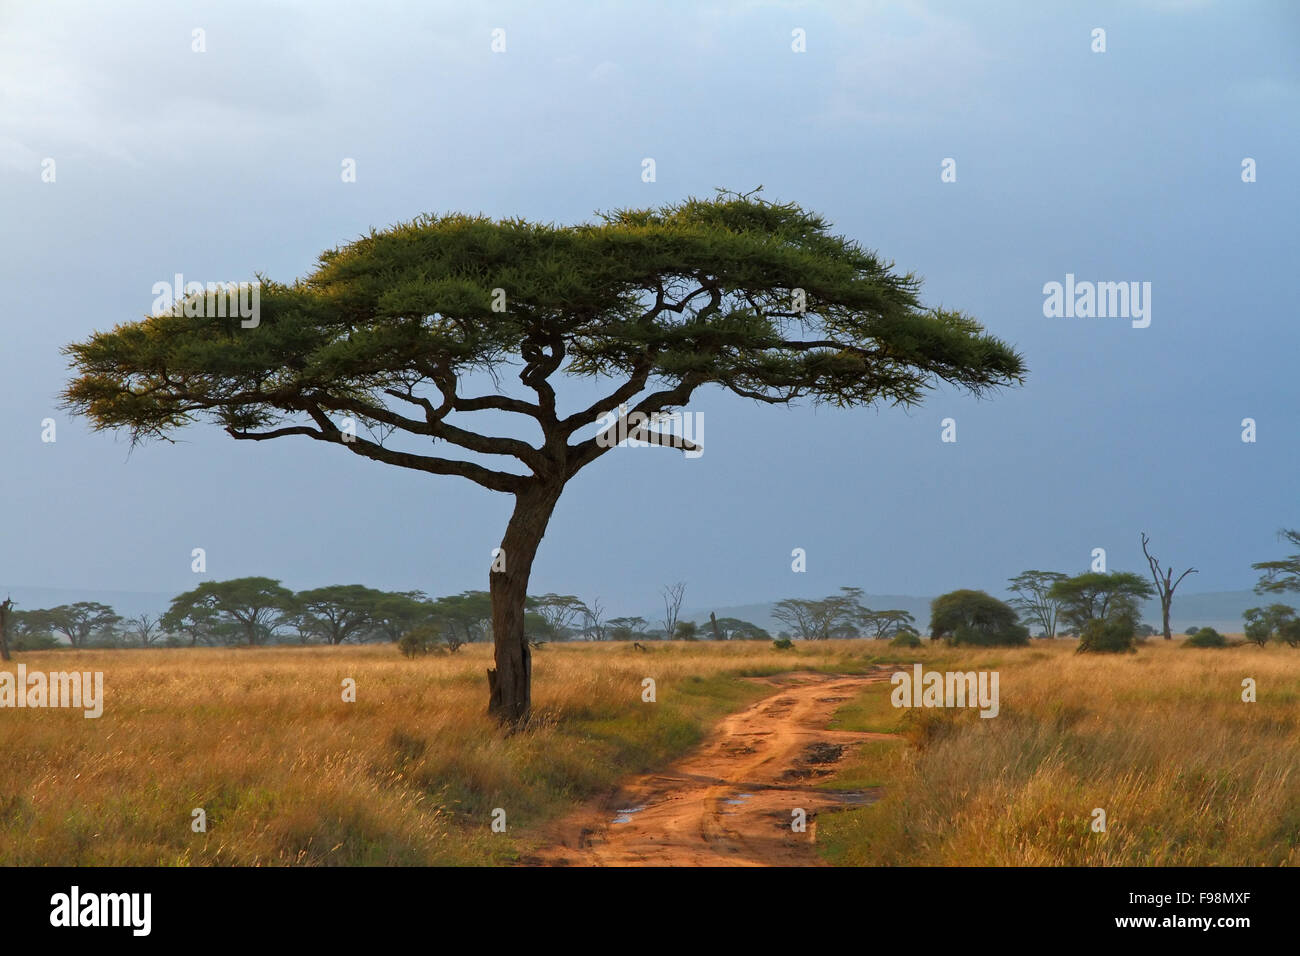 A lone Acacia tree with a dirt road running along beside it - Stock Image